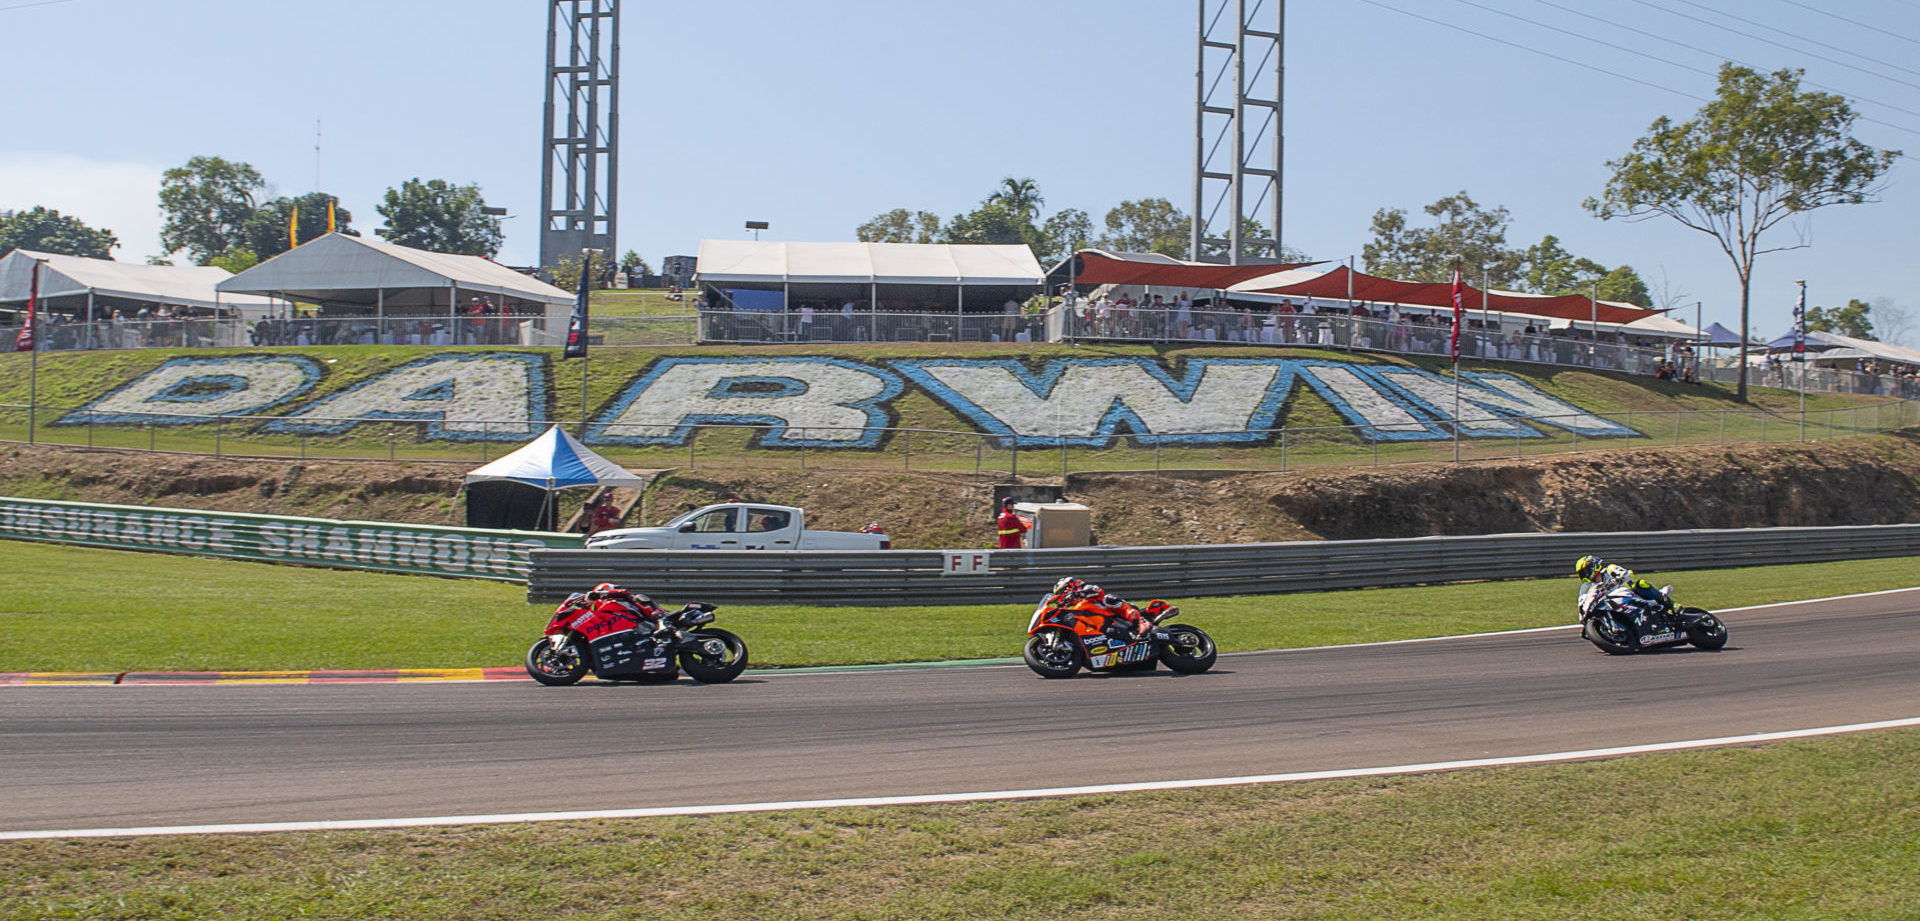 Action from an Australian Superbike race at Hidden Valley Raceway. Photo by Optikal Photography, courtesy ASBK.